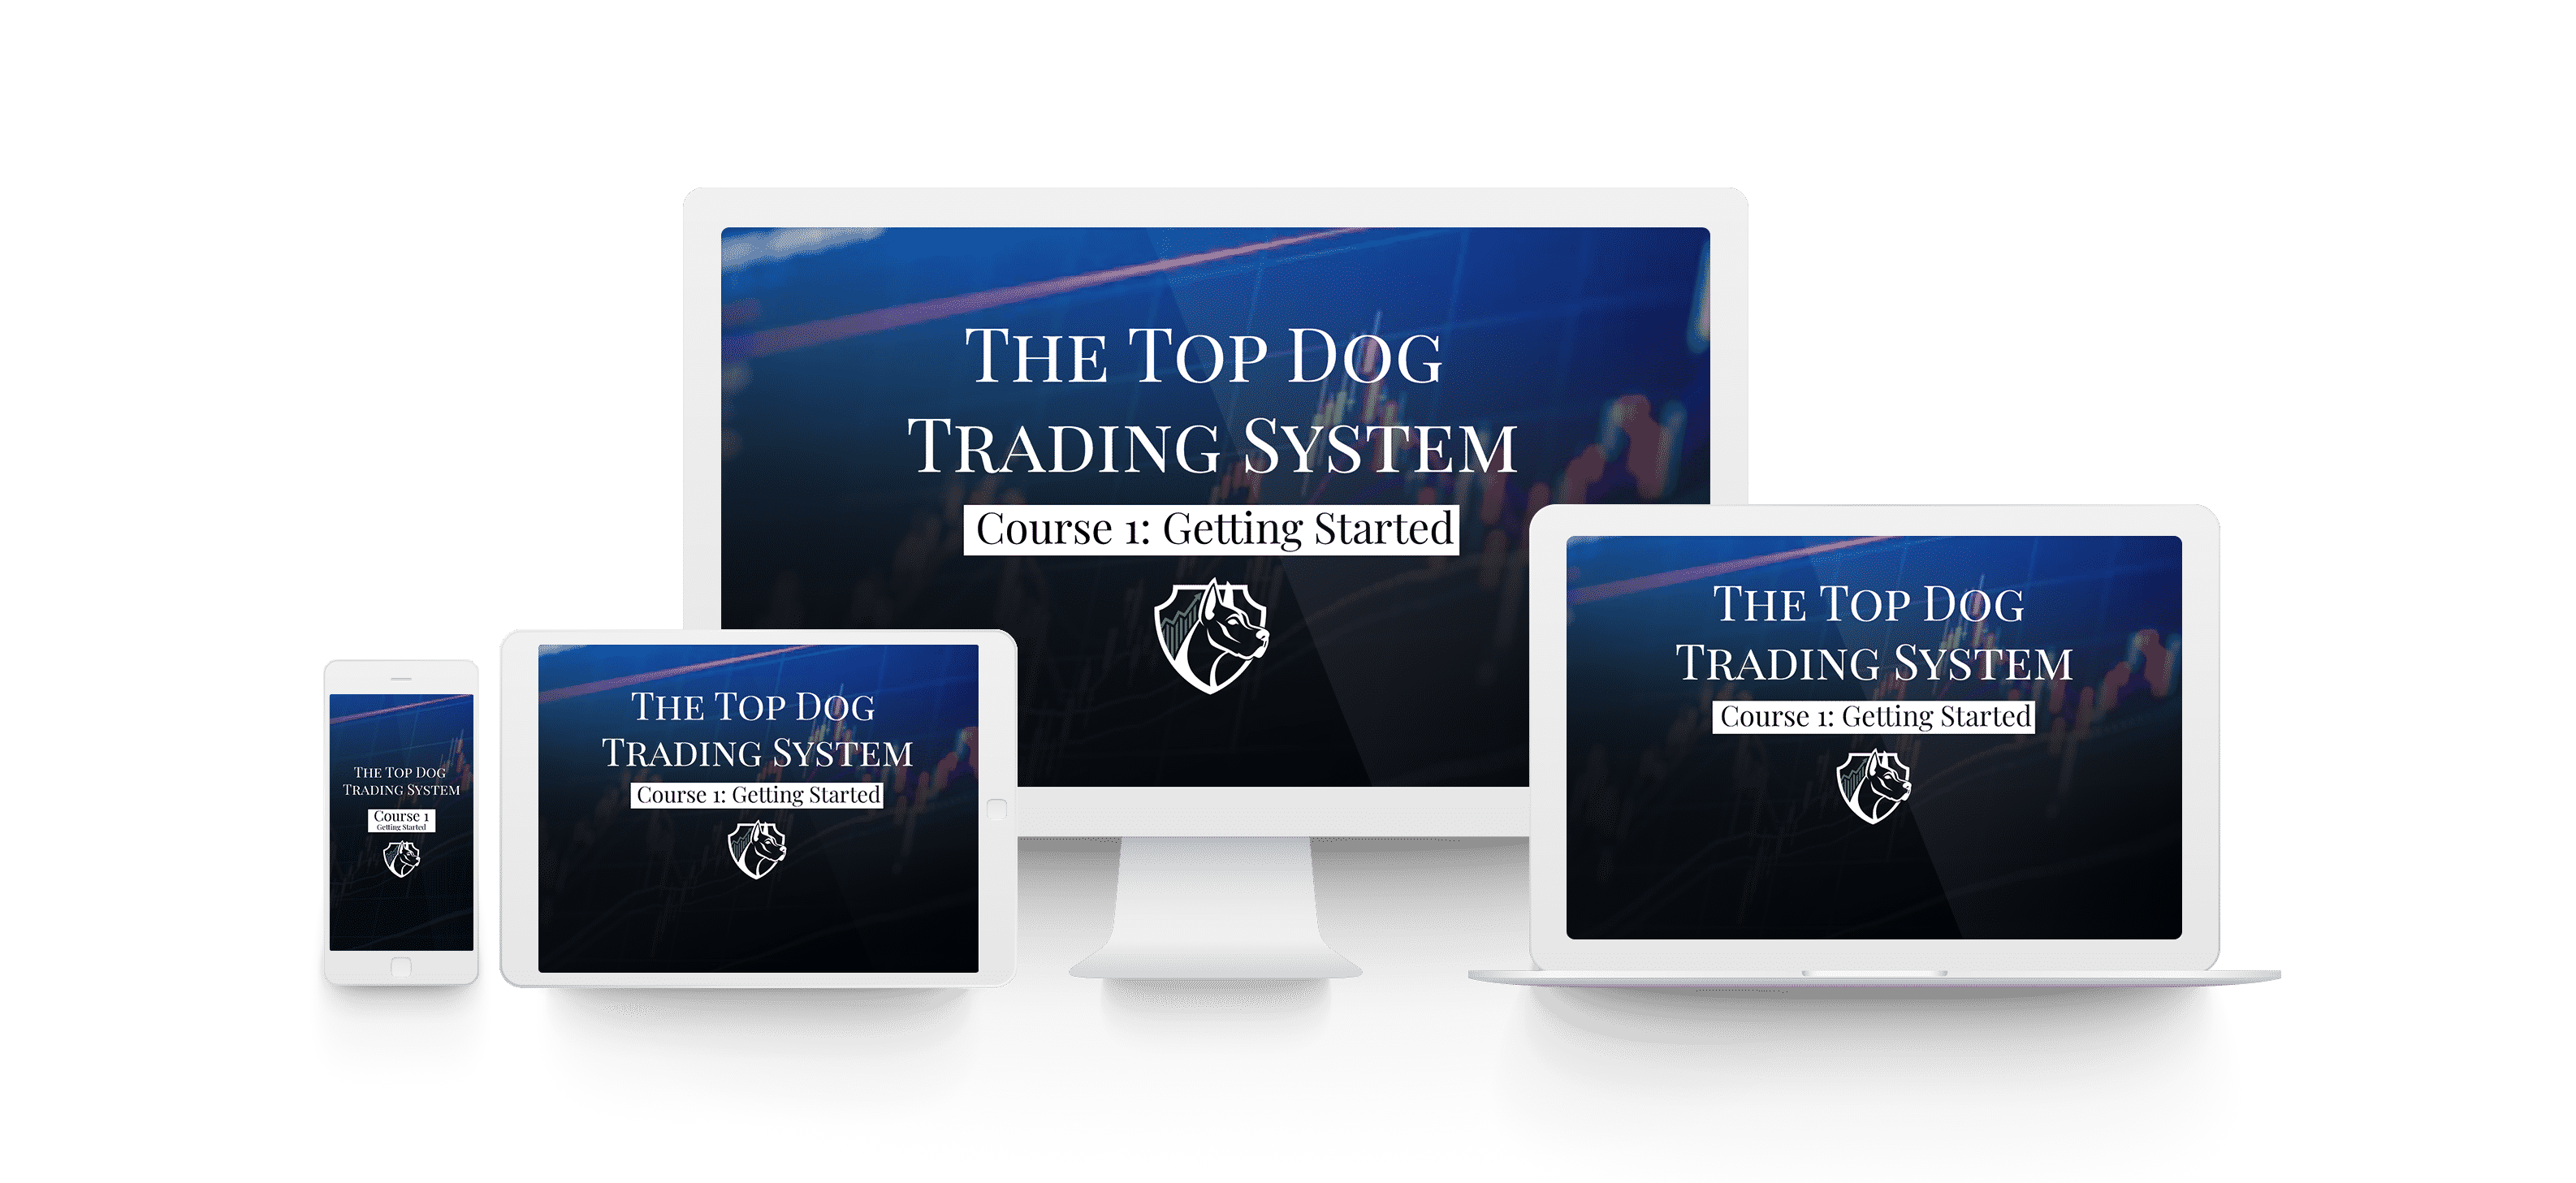 Top Dog Trading Products and Services - Top Dog Trading